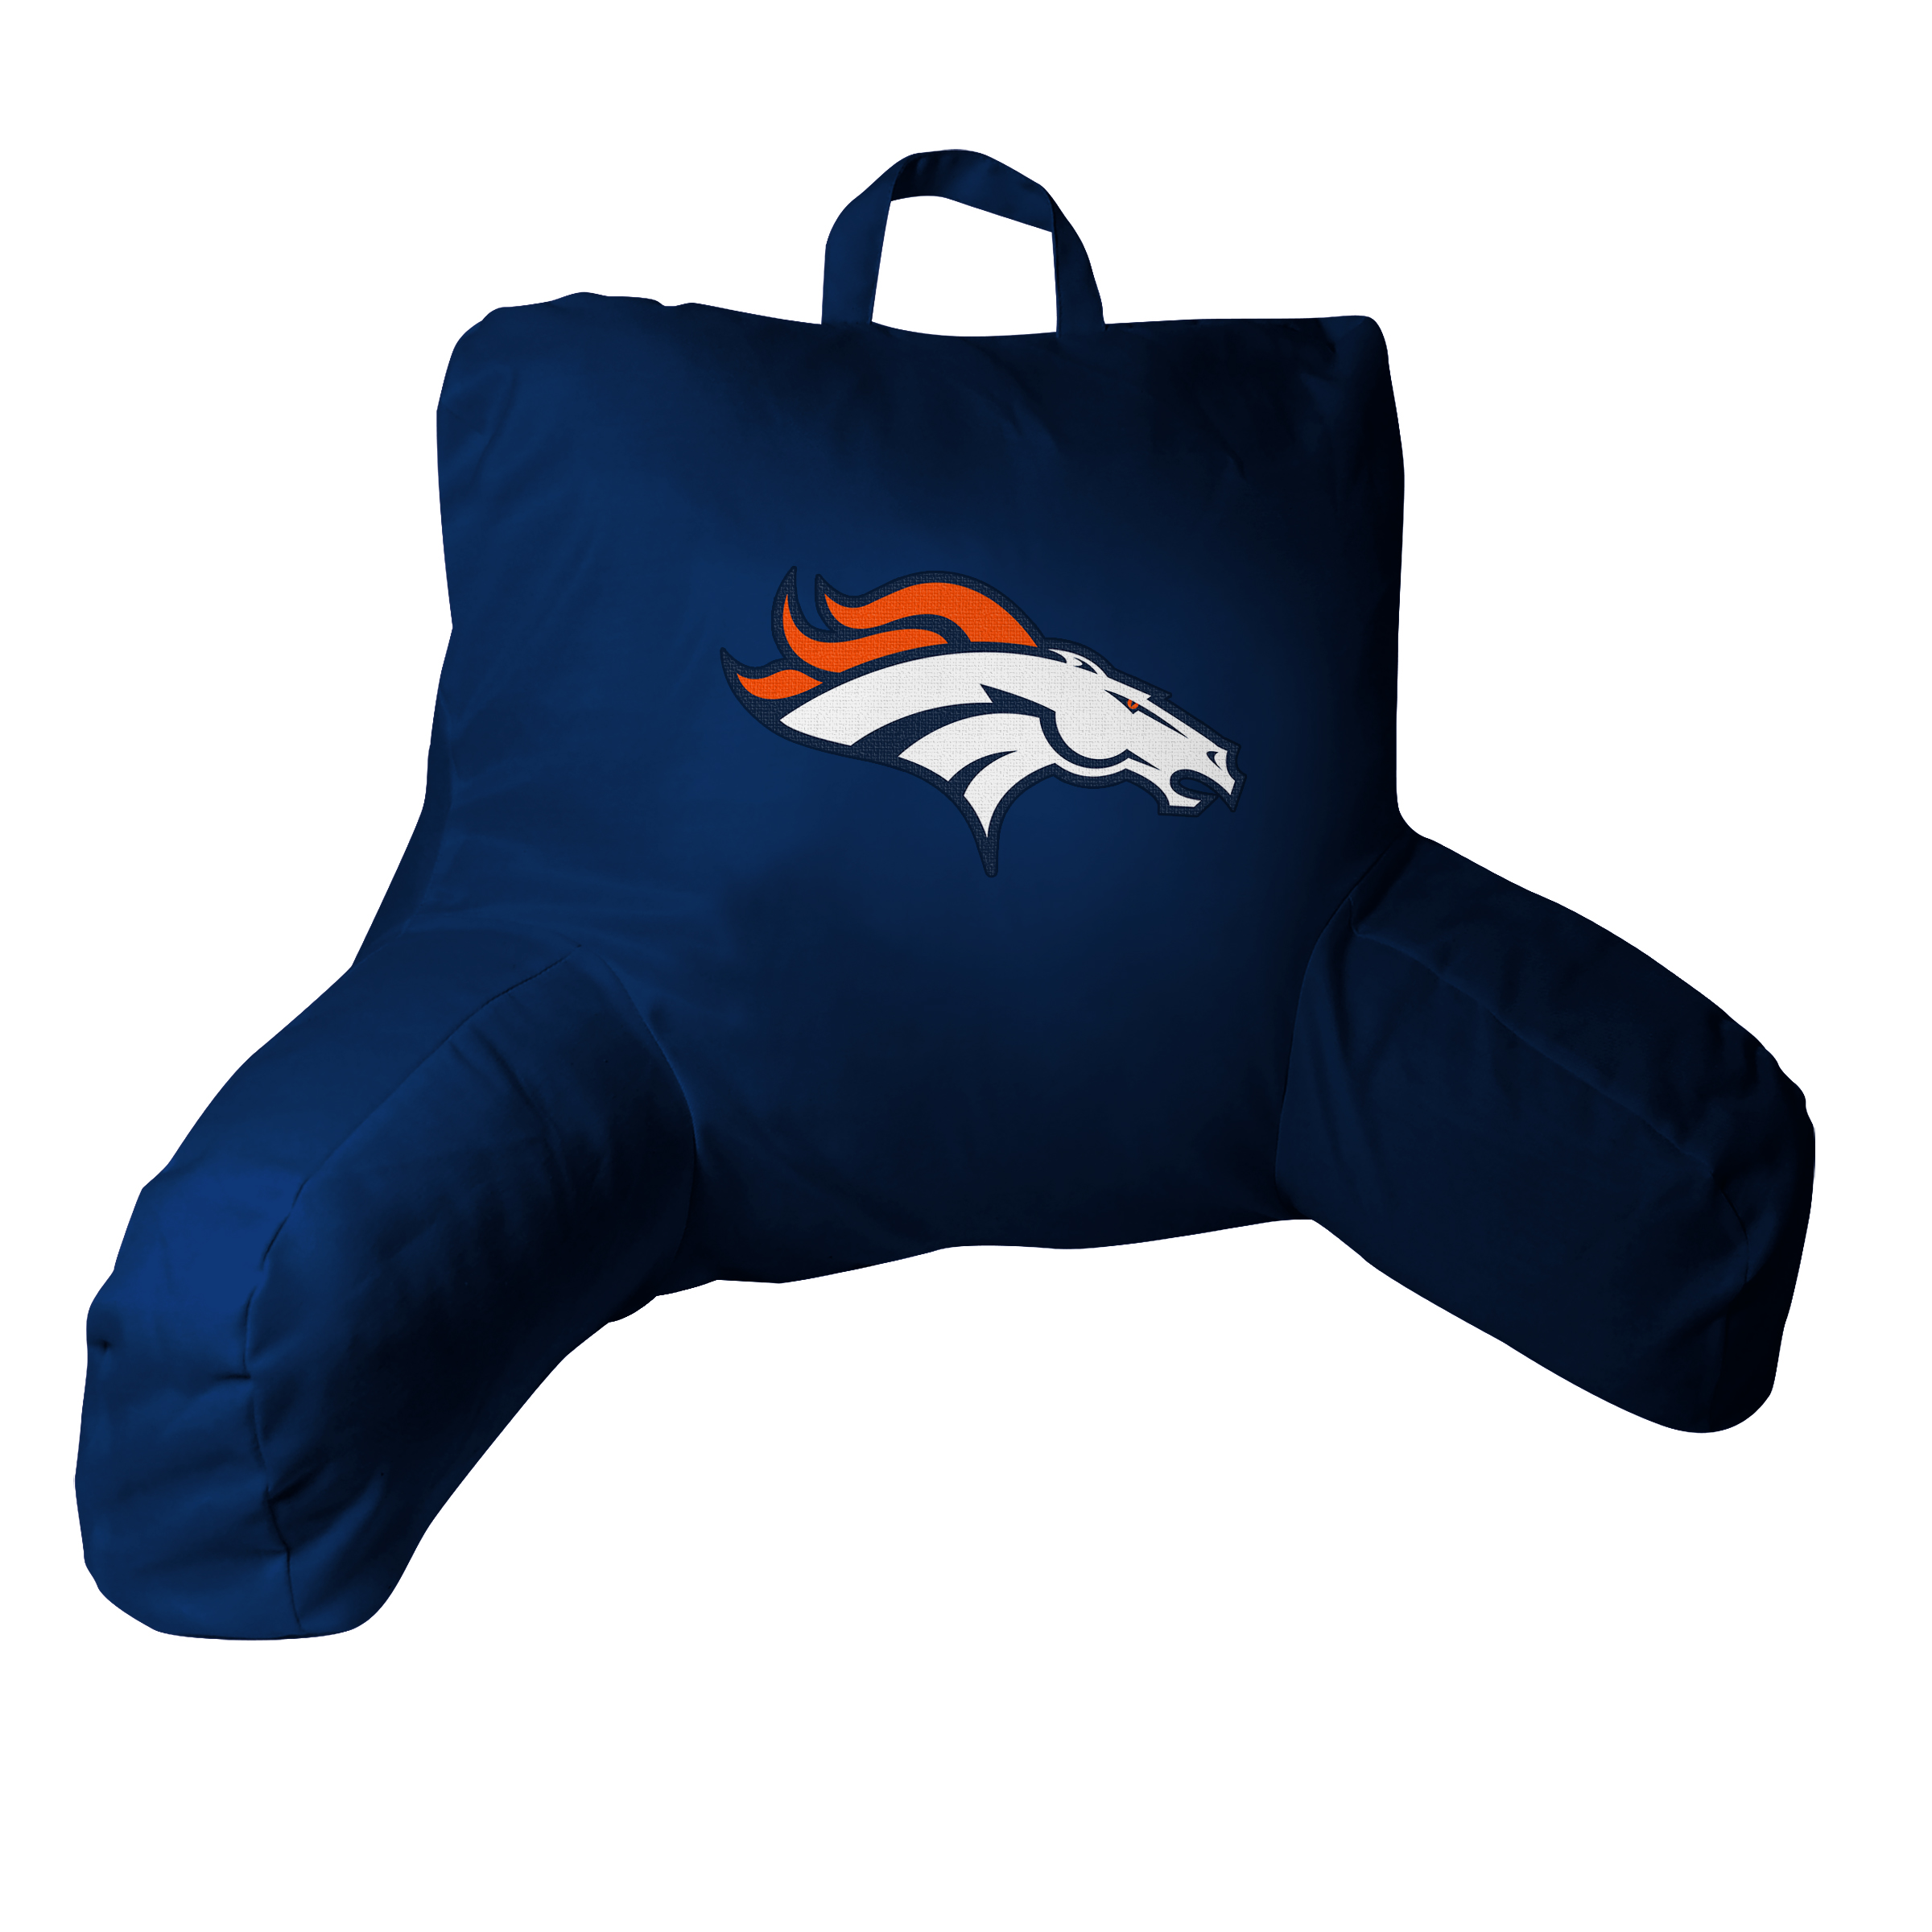 "Broncos OFFICIAL National Football League, 20.5""x 21"" Bed Rest Pillow  by The Northwest Company"